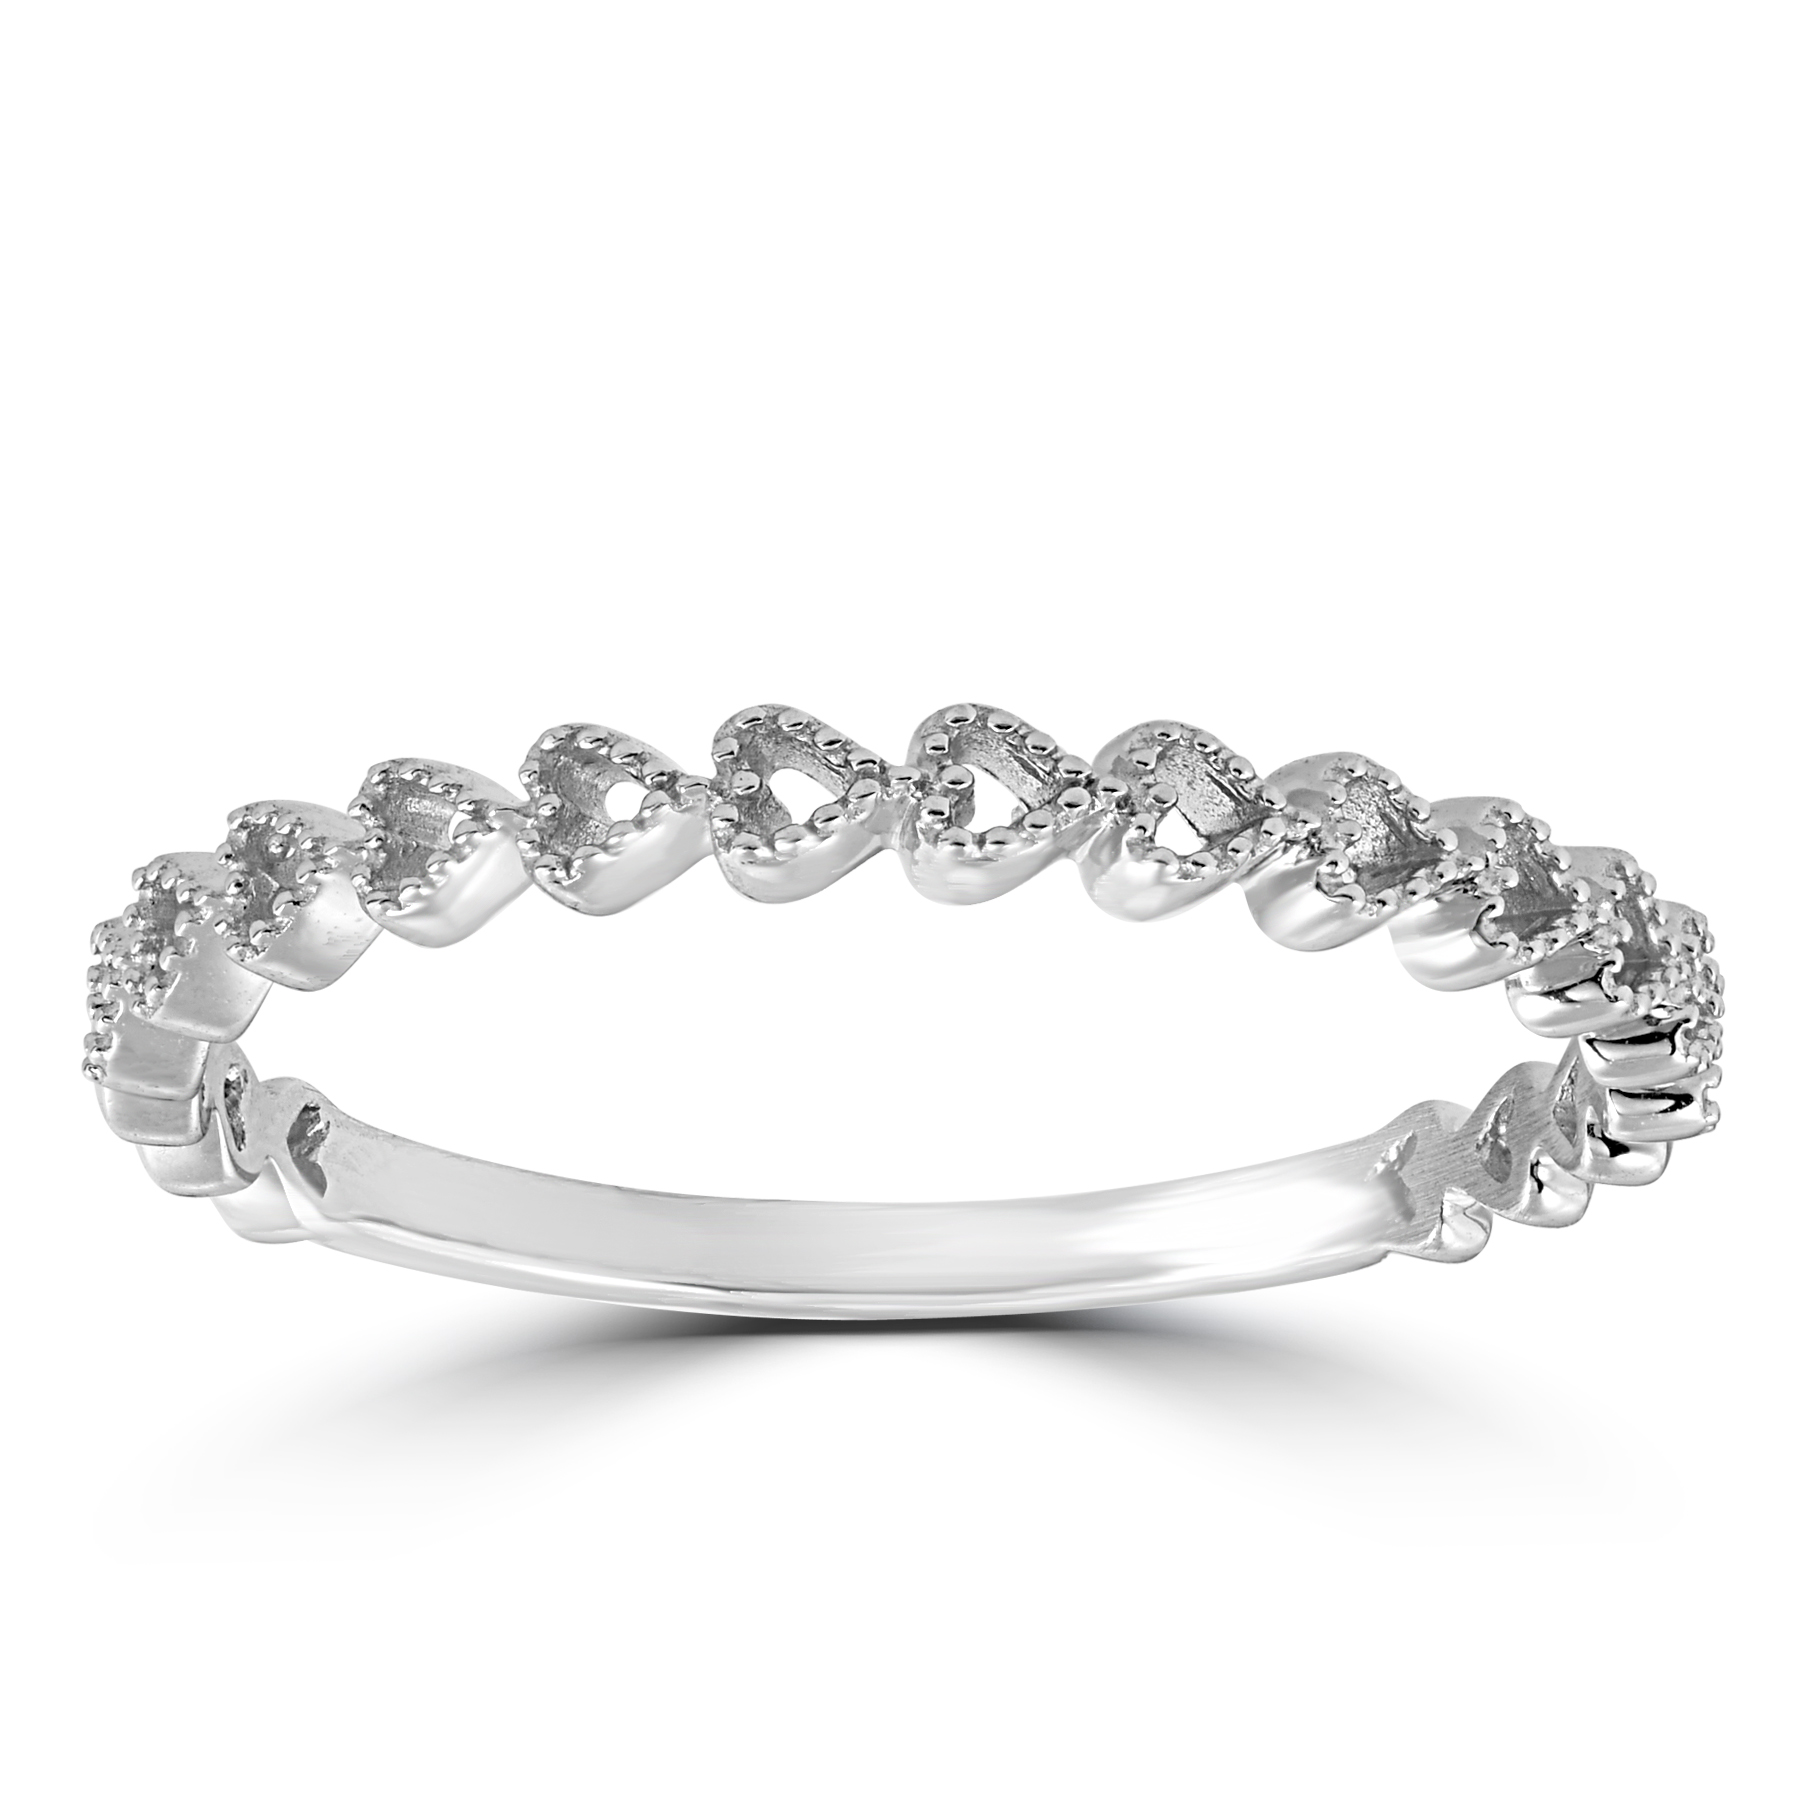 14k white gold heart shape stackable womens ring wedding